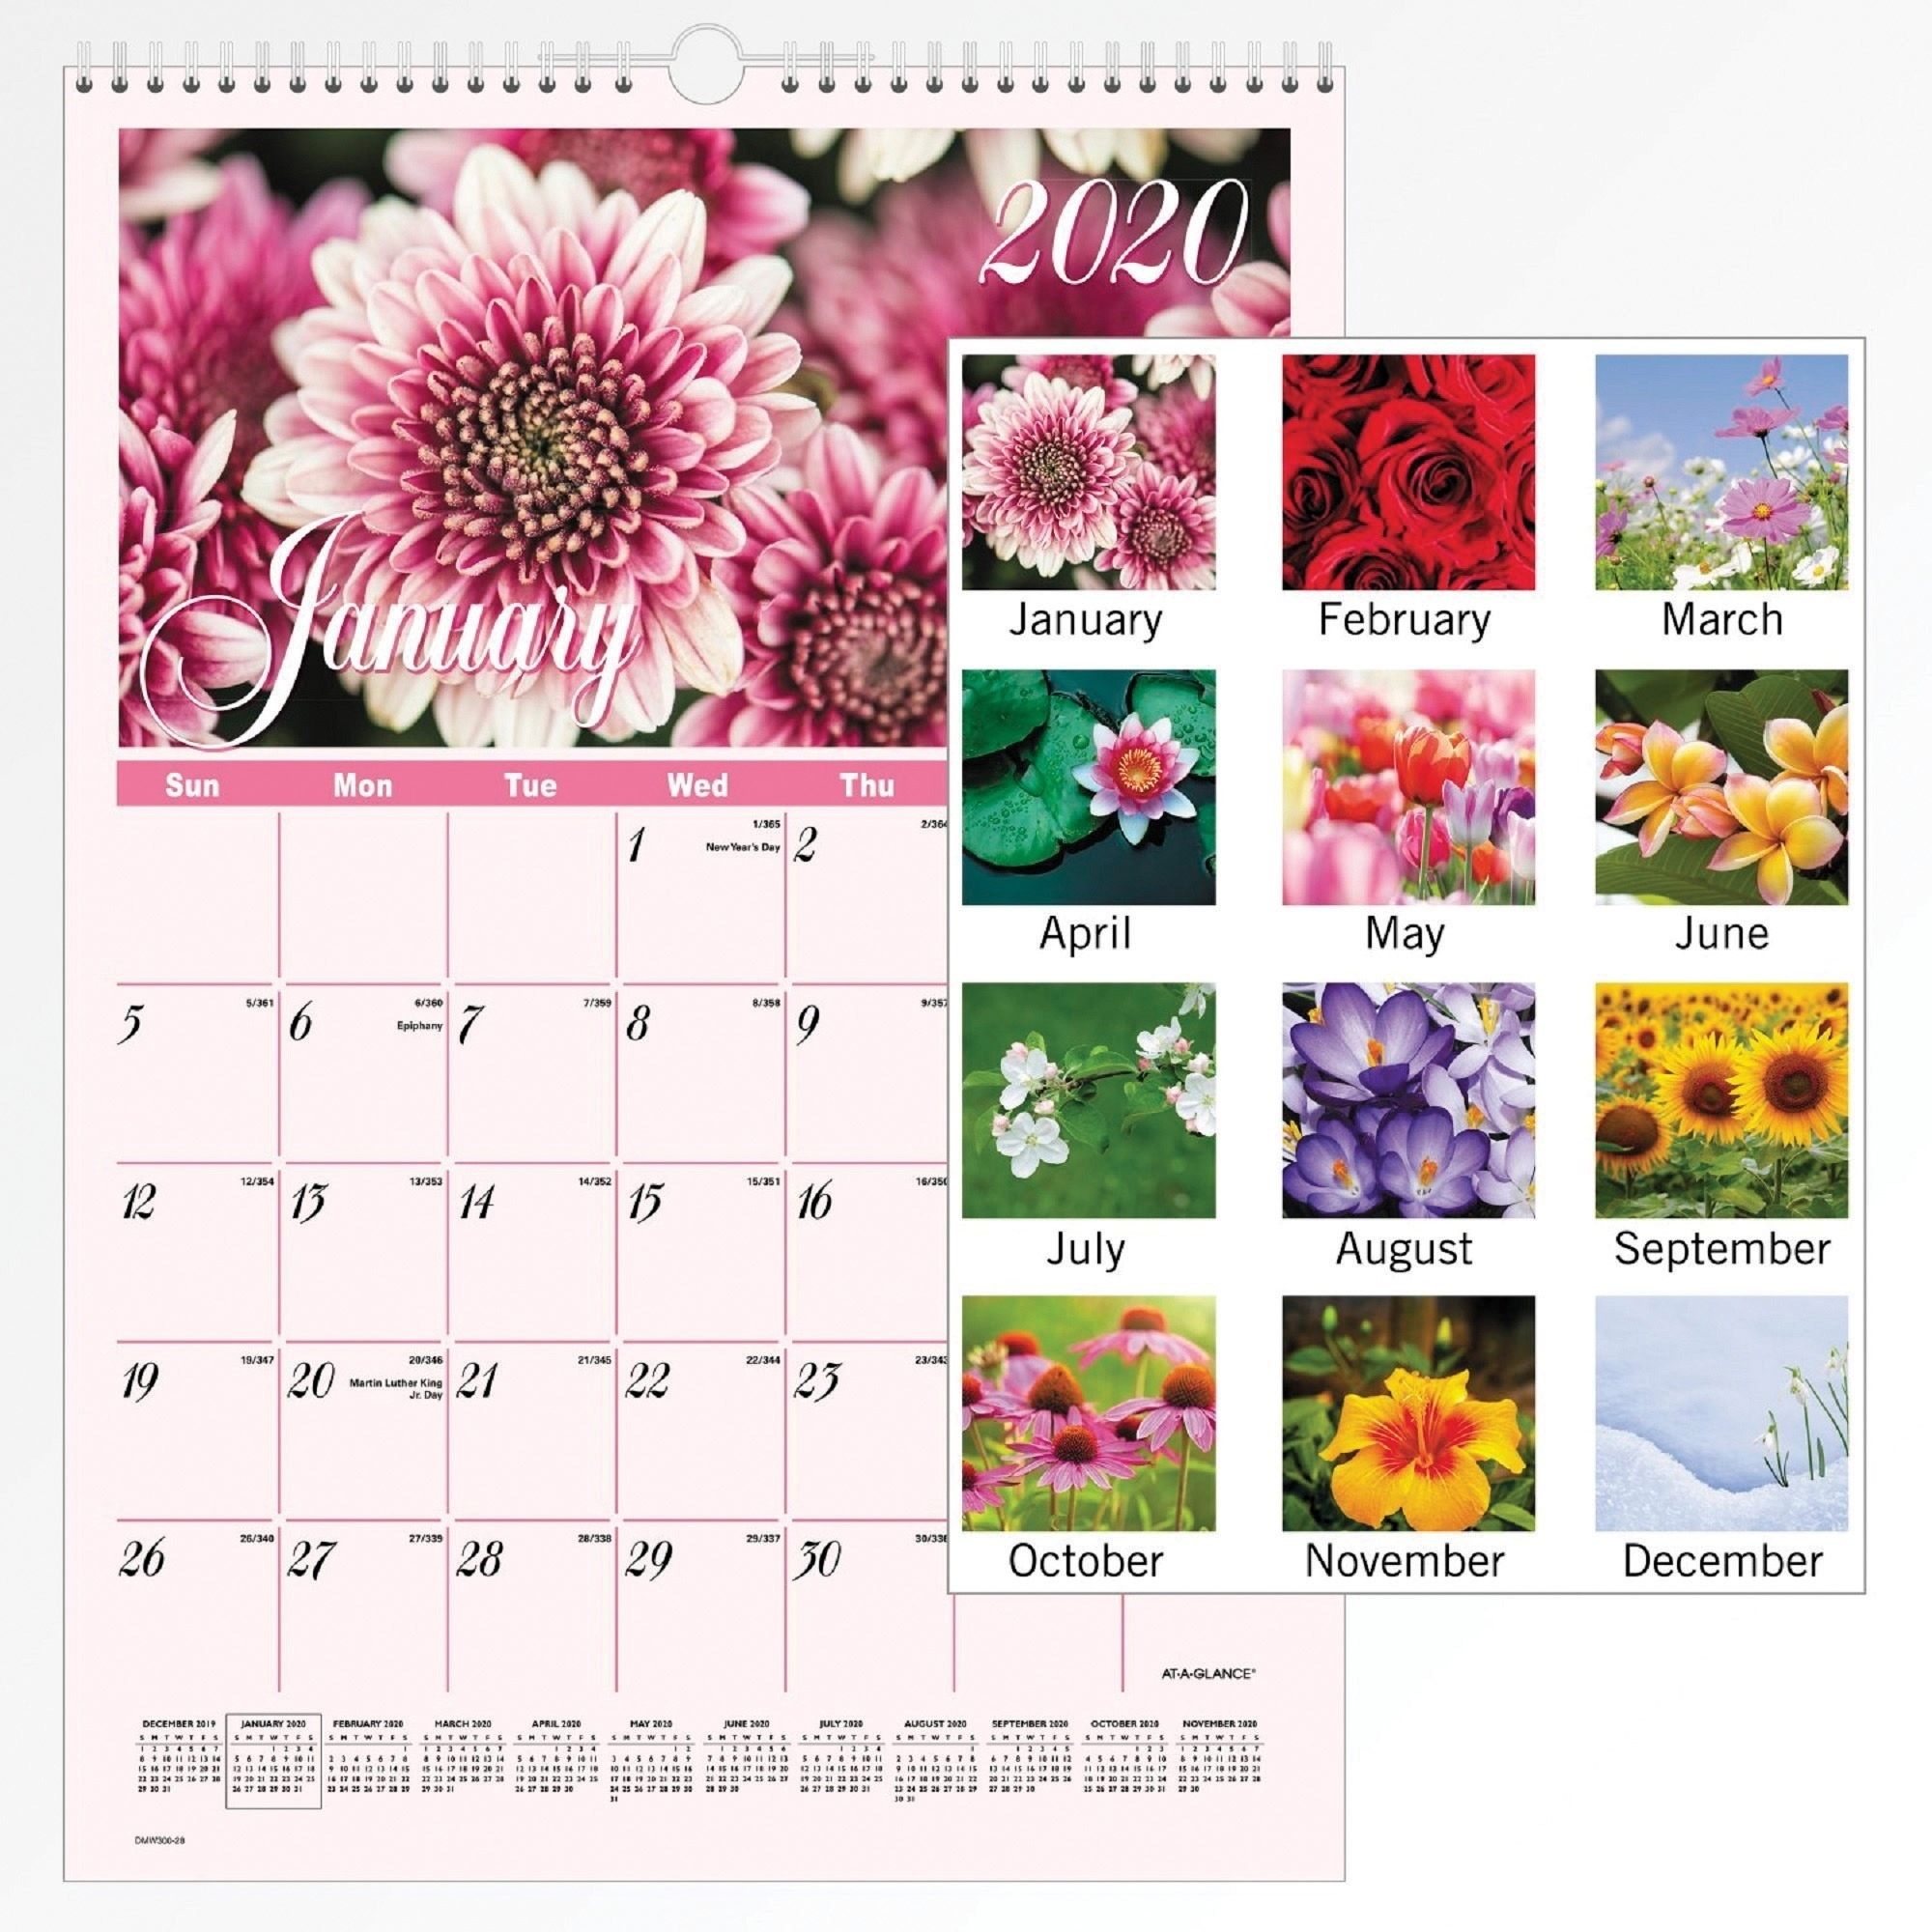 At-A-Glance Flower Garden Monthly Wall Calendar - Monthly - 1 Year -  January 2020 Till December 2020 - 1 Month Single Page Layout - 12 X 17 -  Wall